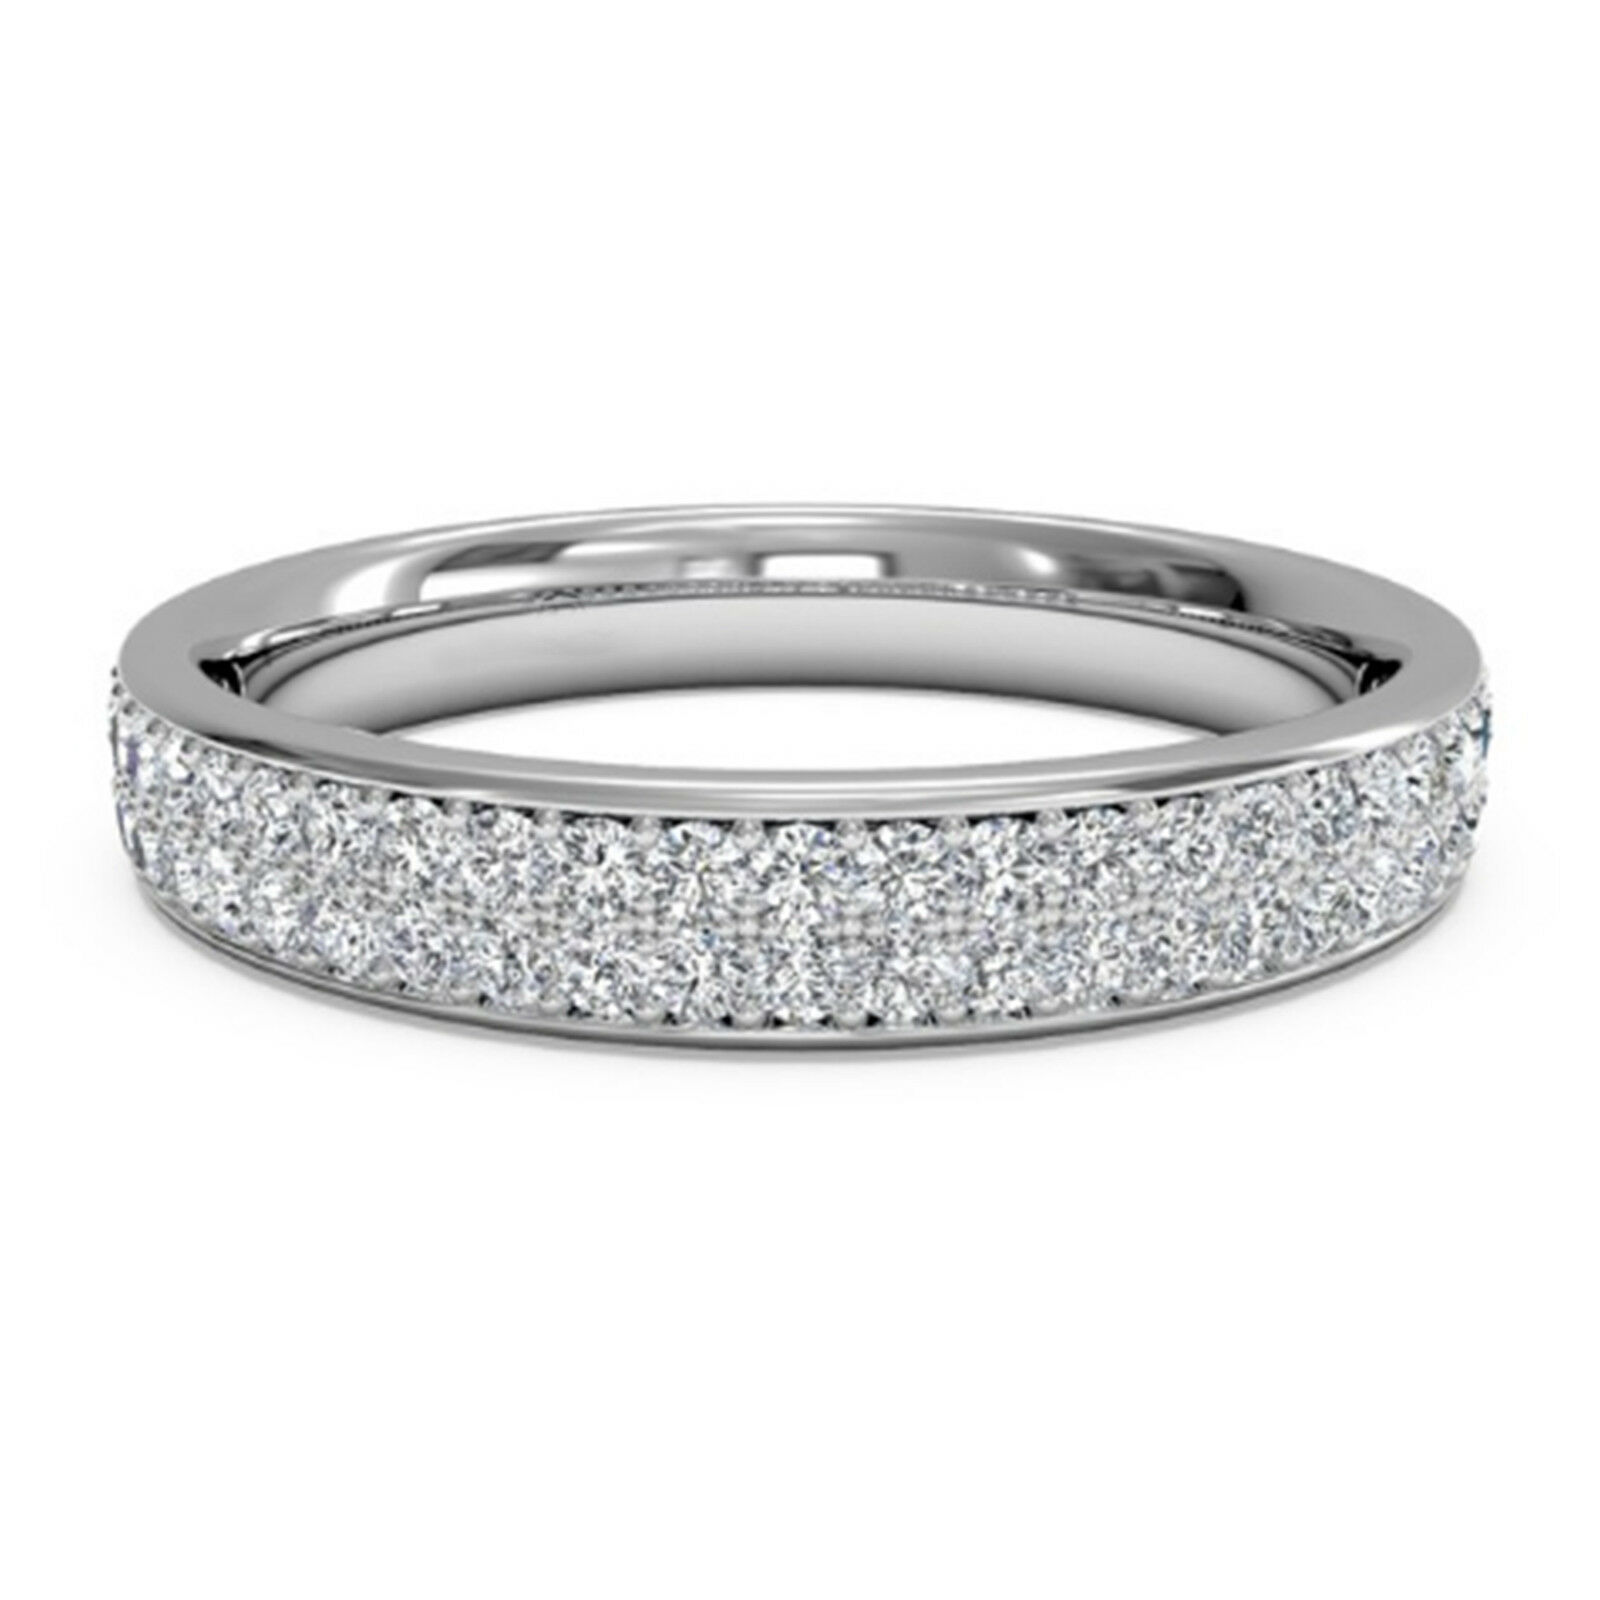 1 Ct D vvs1 Diamond Eternity Wedding Band Ring in 14k White Gold